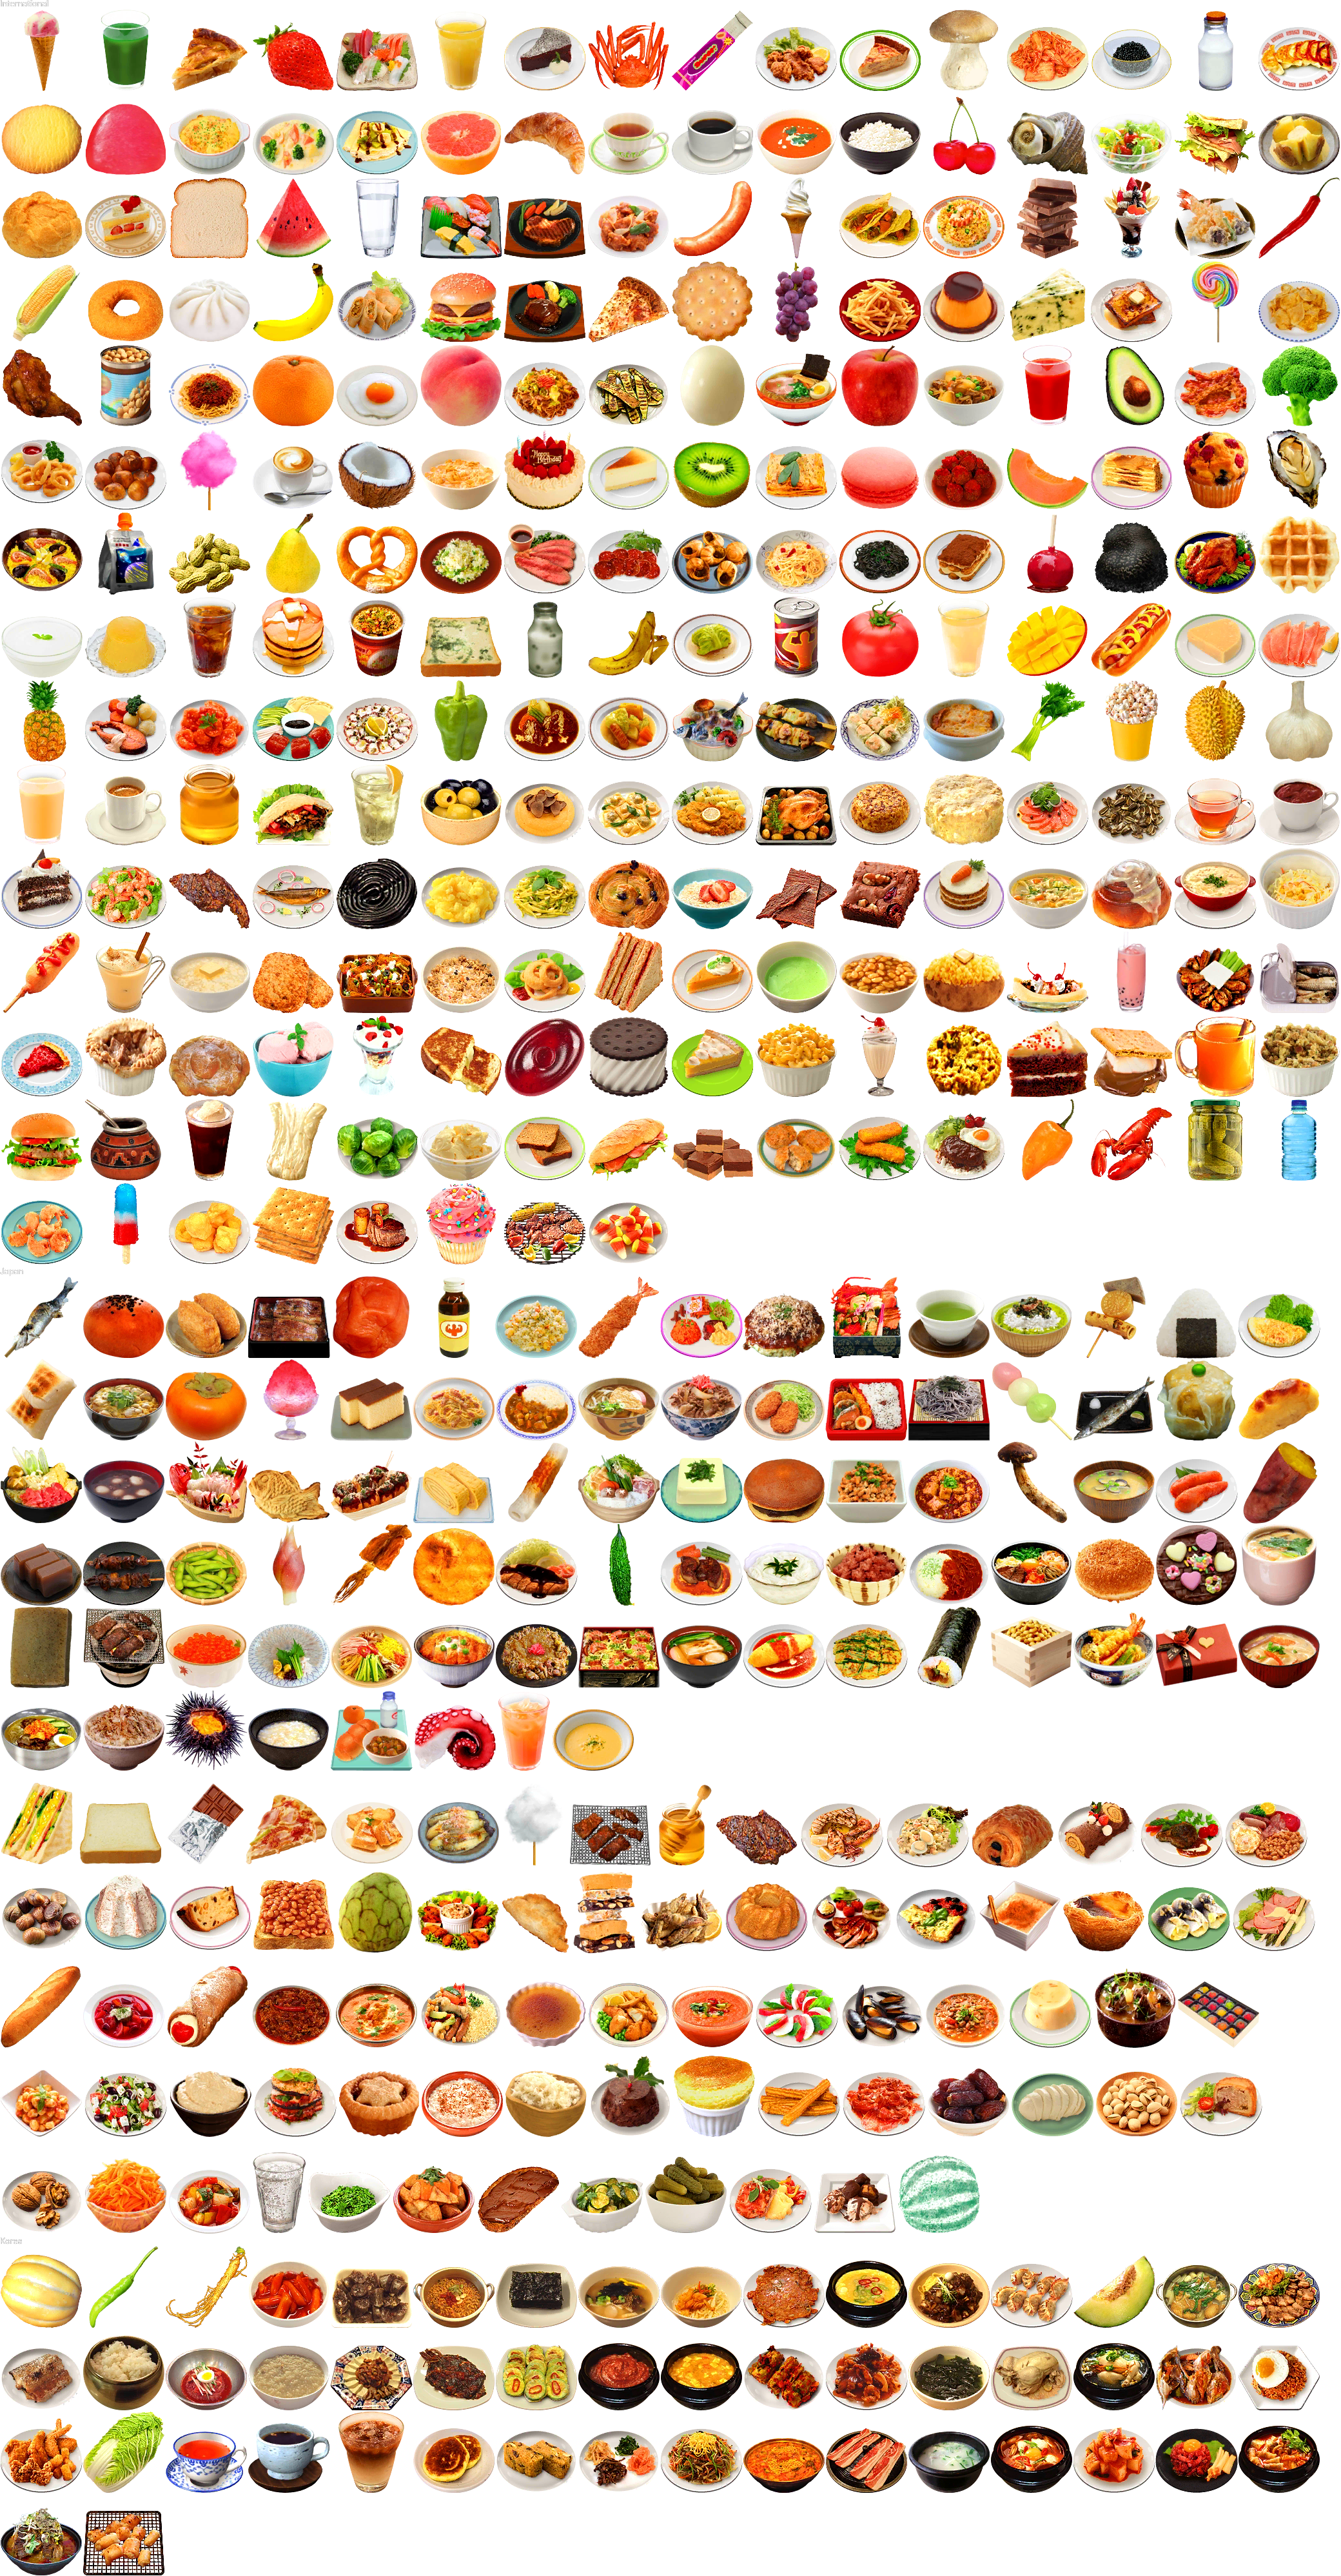 3DS - Tomodachi Life - Food - The Spriters Resource